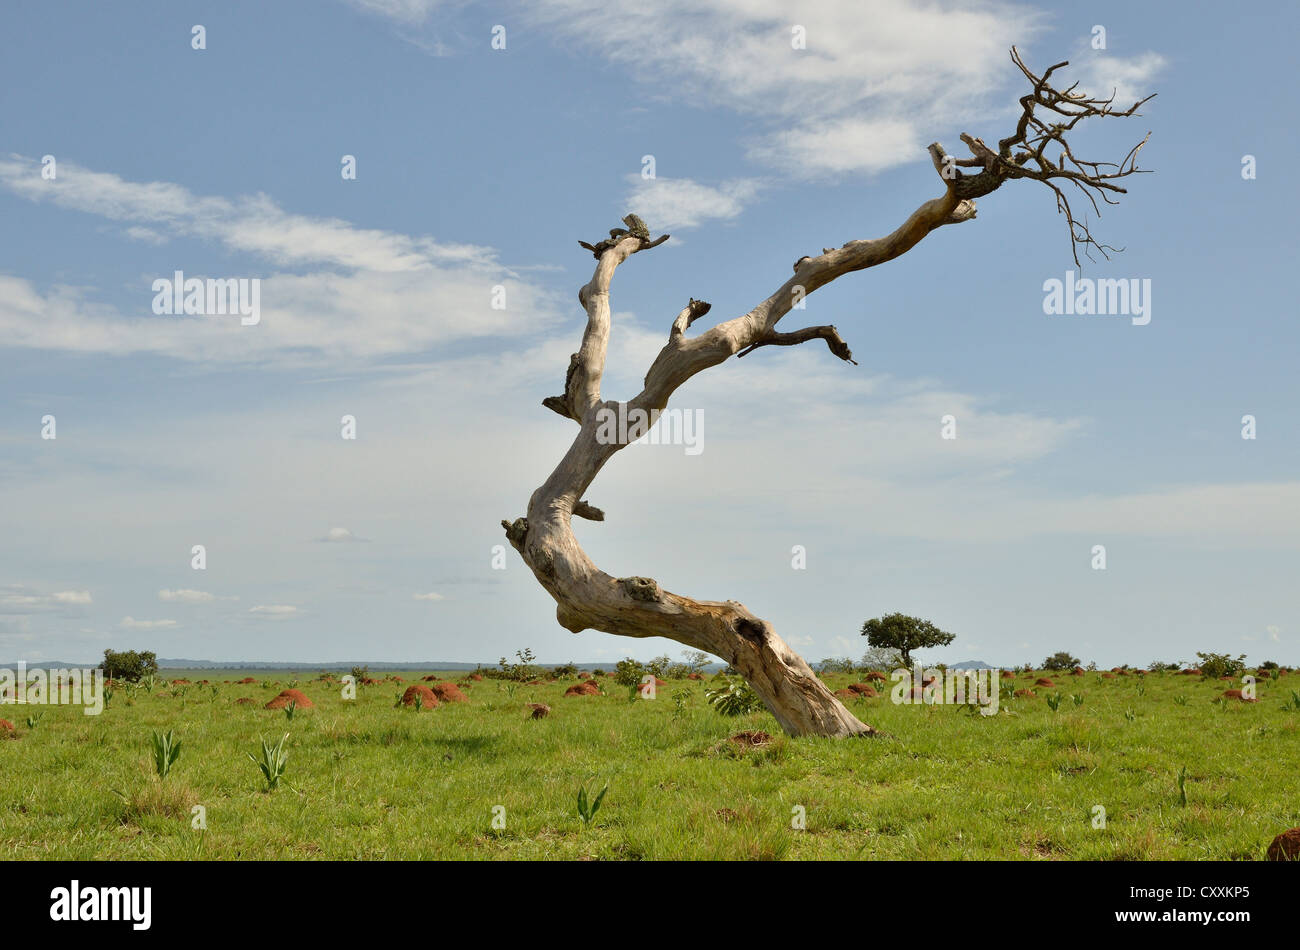 Dead tree near Idool, near Ngaoundéré, Cameroon, Central Africa, Africa - Stock Image